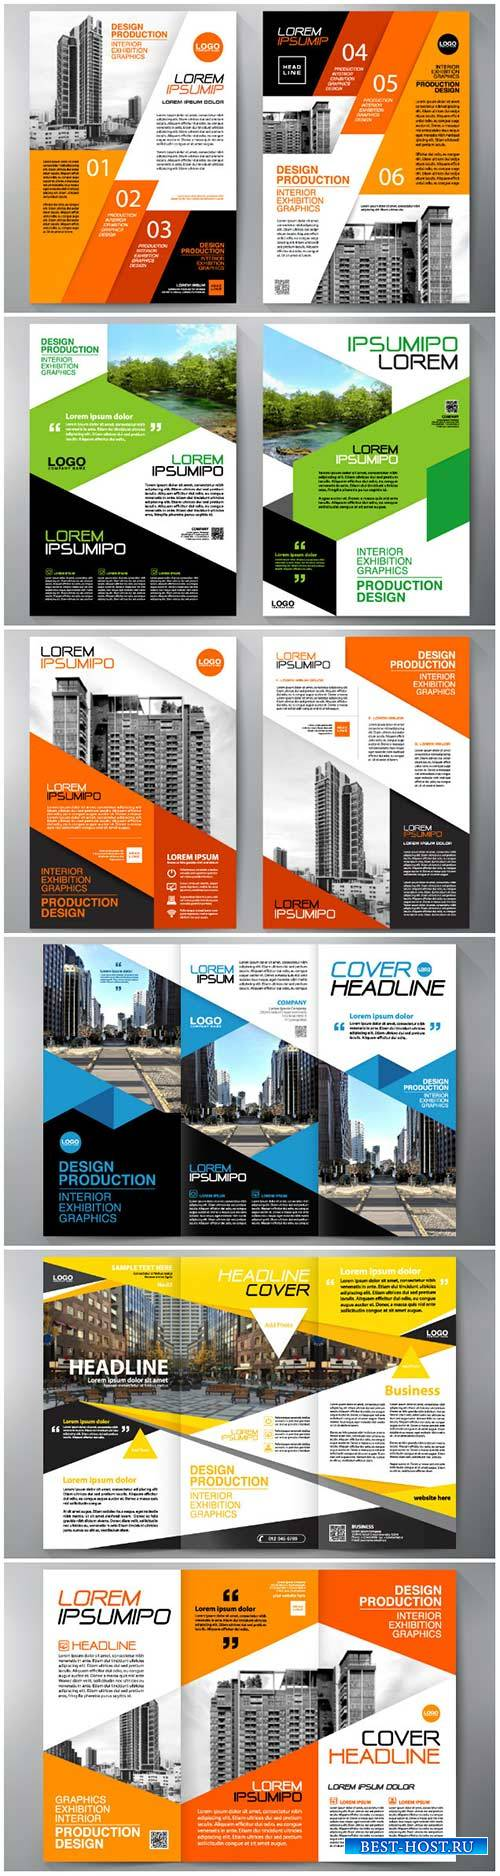 Business brochure flyer design vector template, magazine flyer mockup